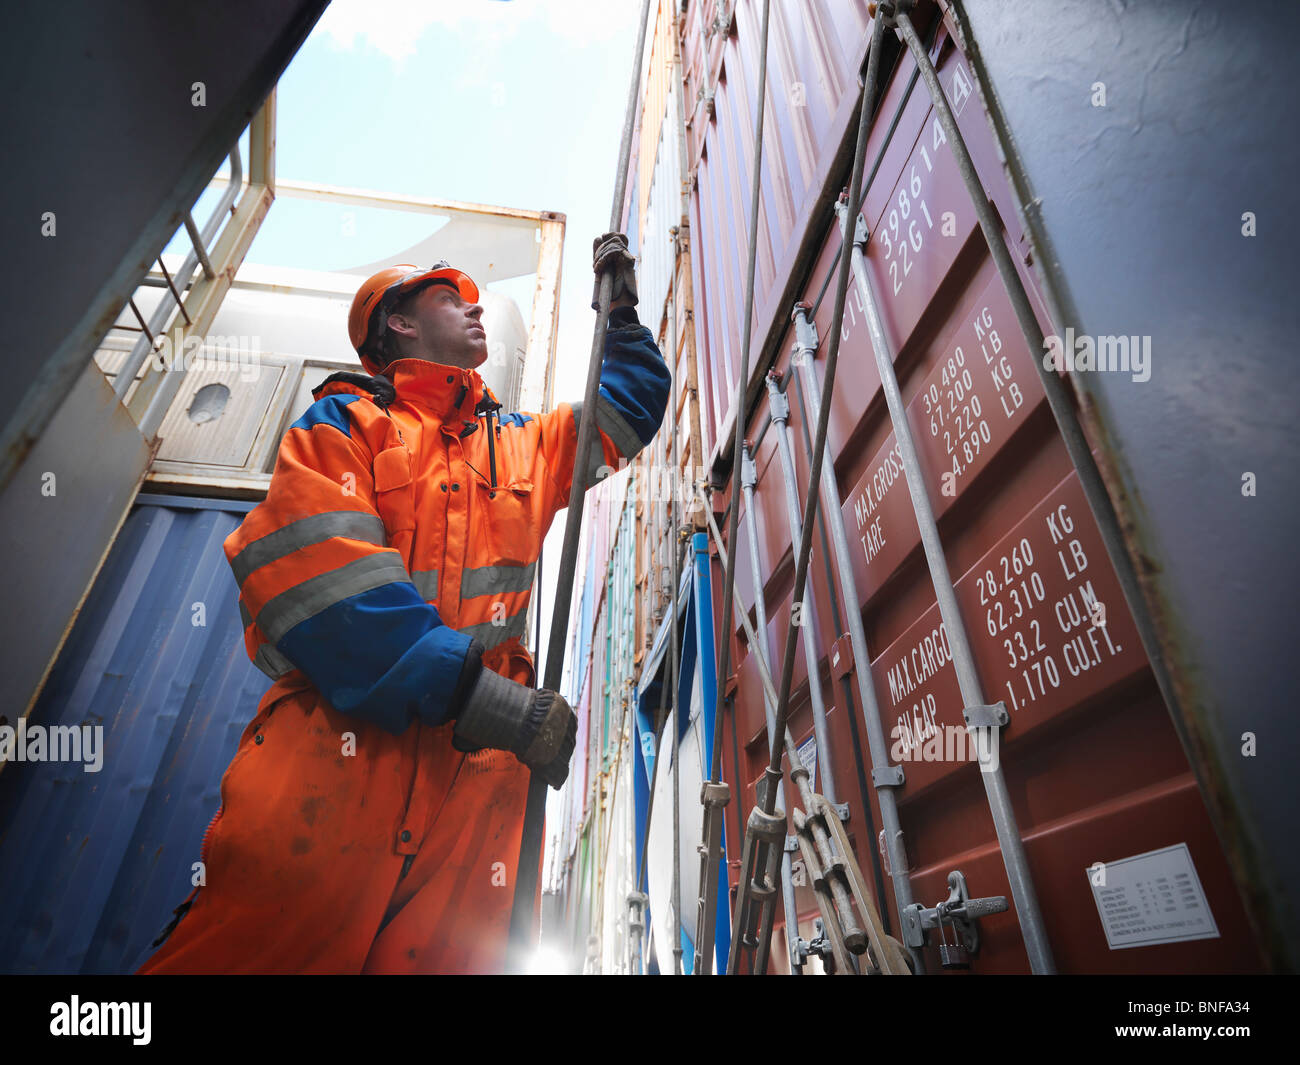 Sailor pulling a rope in cargo bay - Stock Image